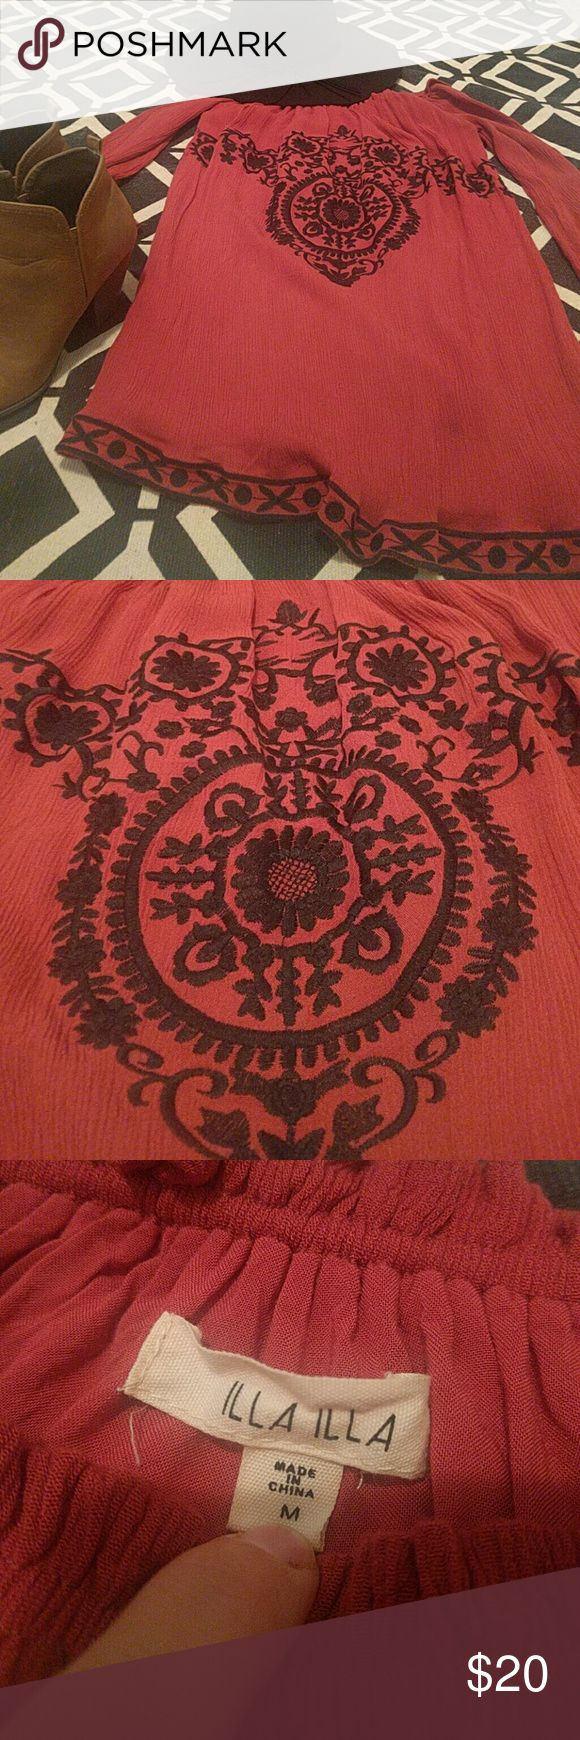 LIKE NEW Bohemian Blouse Another great Fall outfit in the making here! Pair with jeans, booties, and a hat for a Saturday at the farmers market. Gorgeous embroidery! Illa Illa Tops Blouses